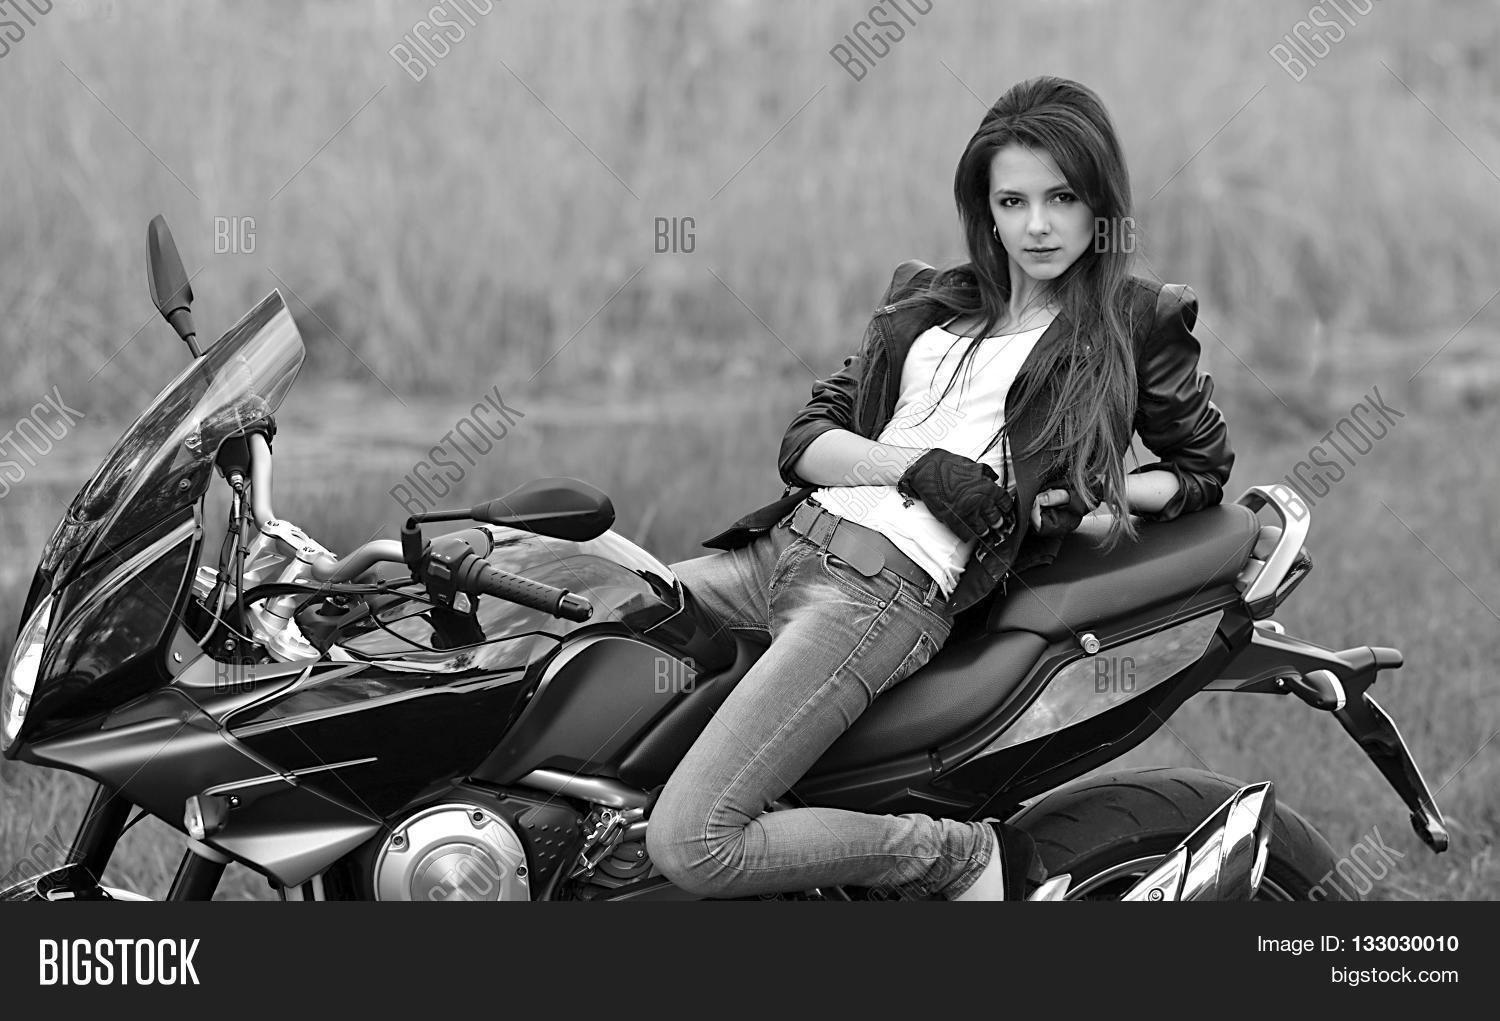 Biker Girl, Sexy Biker Image  Photo Free Trial  Bigstock-3835